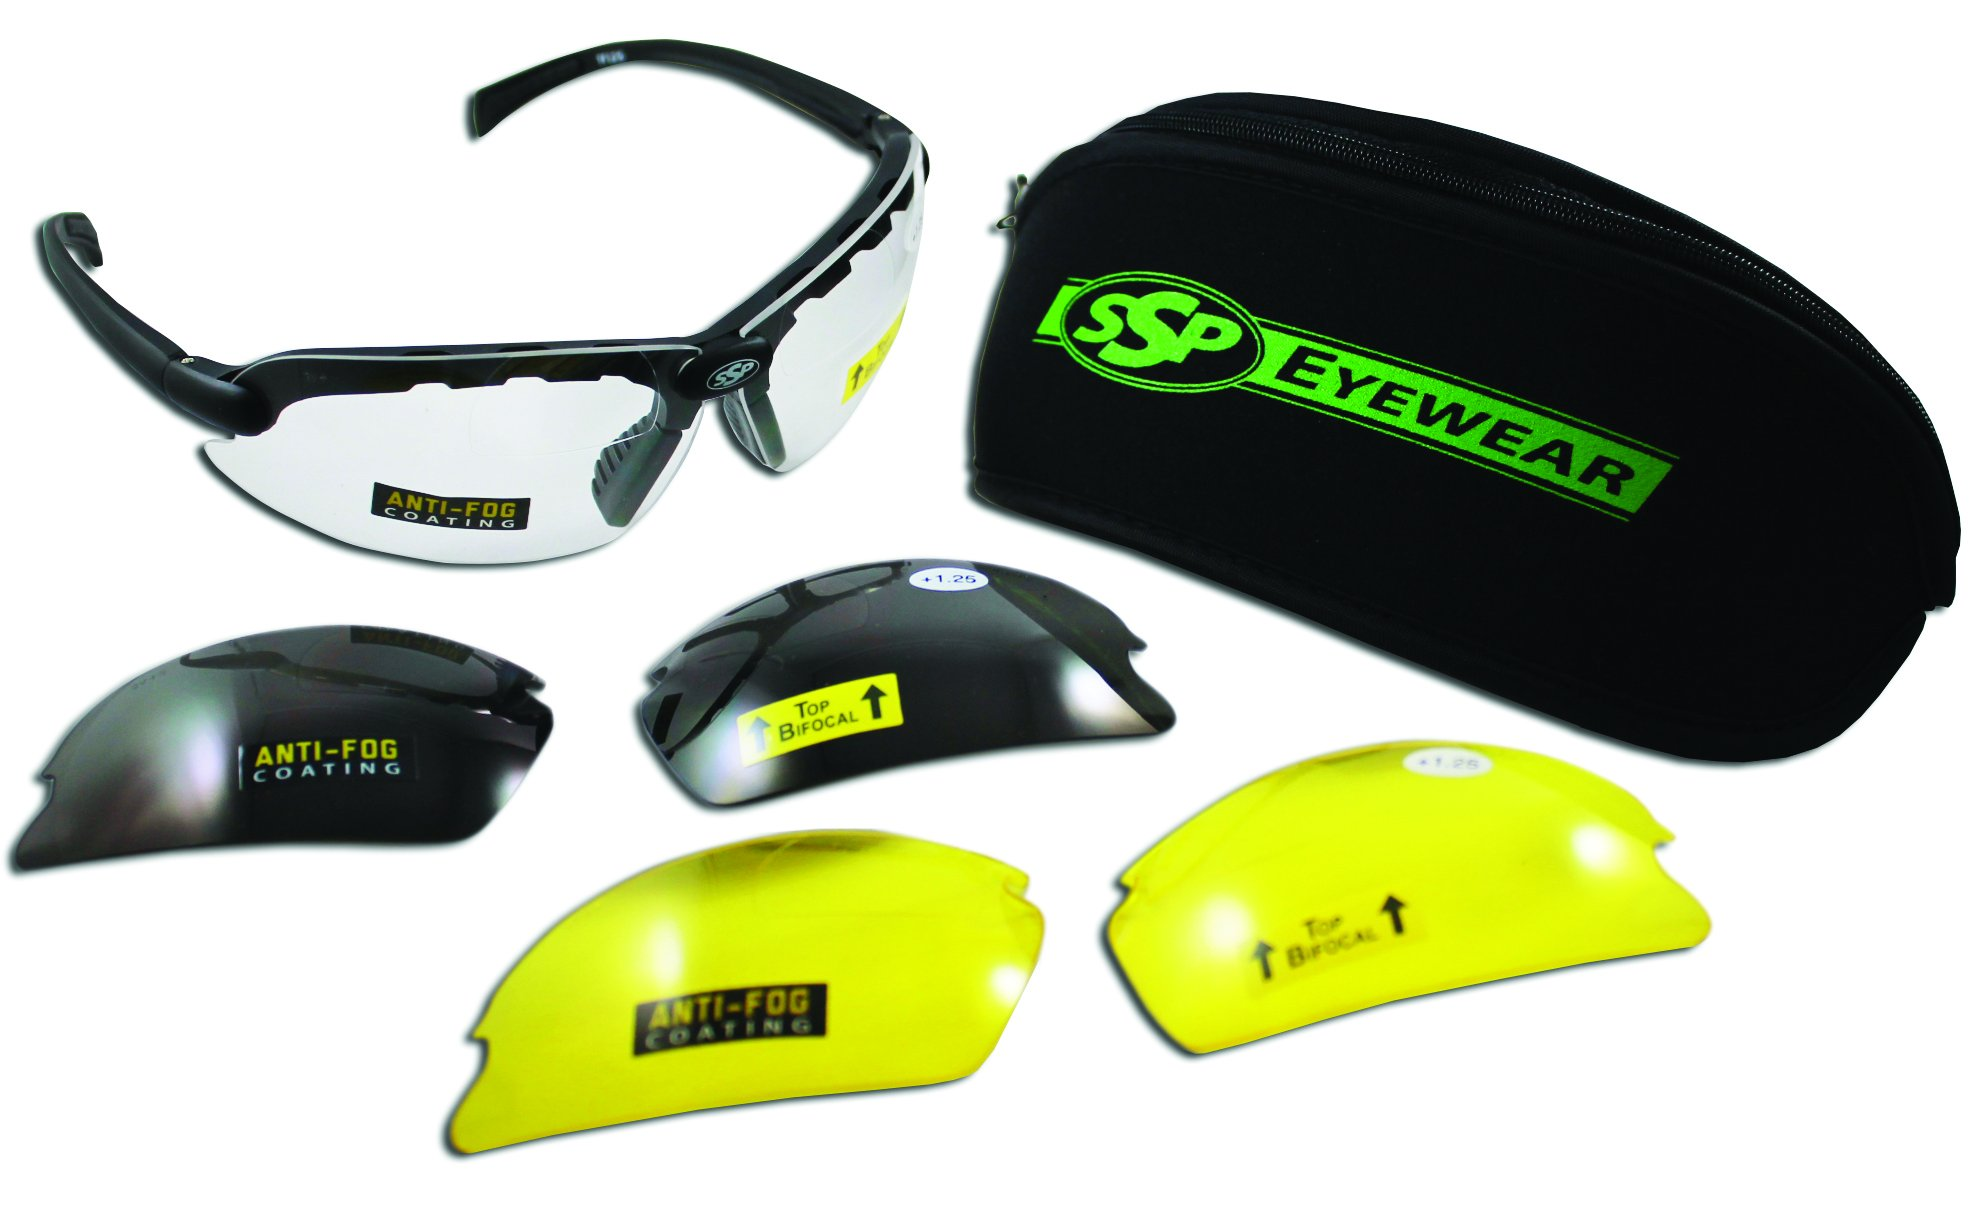 SSP Eyewear Top Focal Tactical Safety Glasses Kit with Assorted Interchangeable 1.50 Bifocal Lenses,TF 1.50 AST KIT by Specialized Safety Products (Image #1)